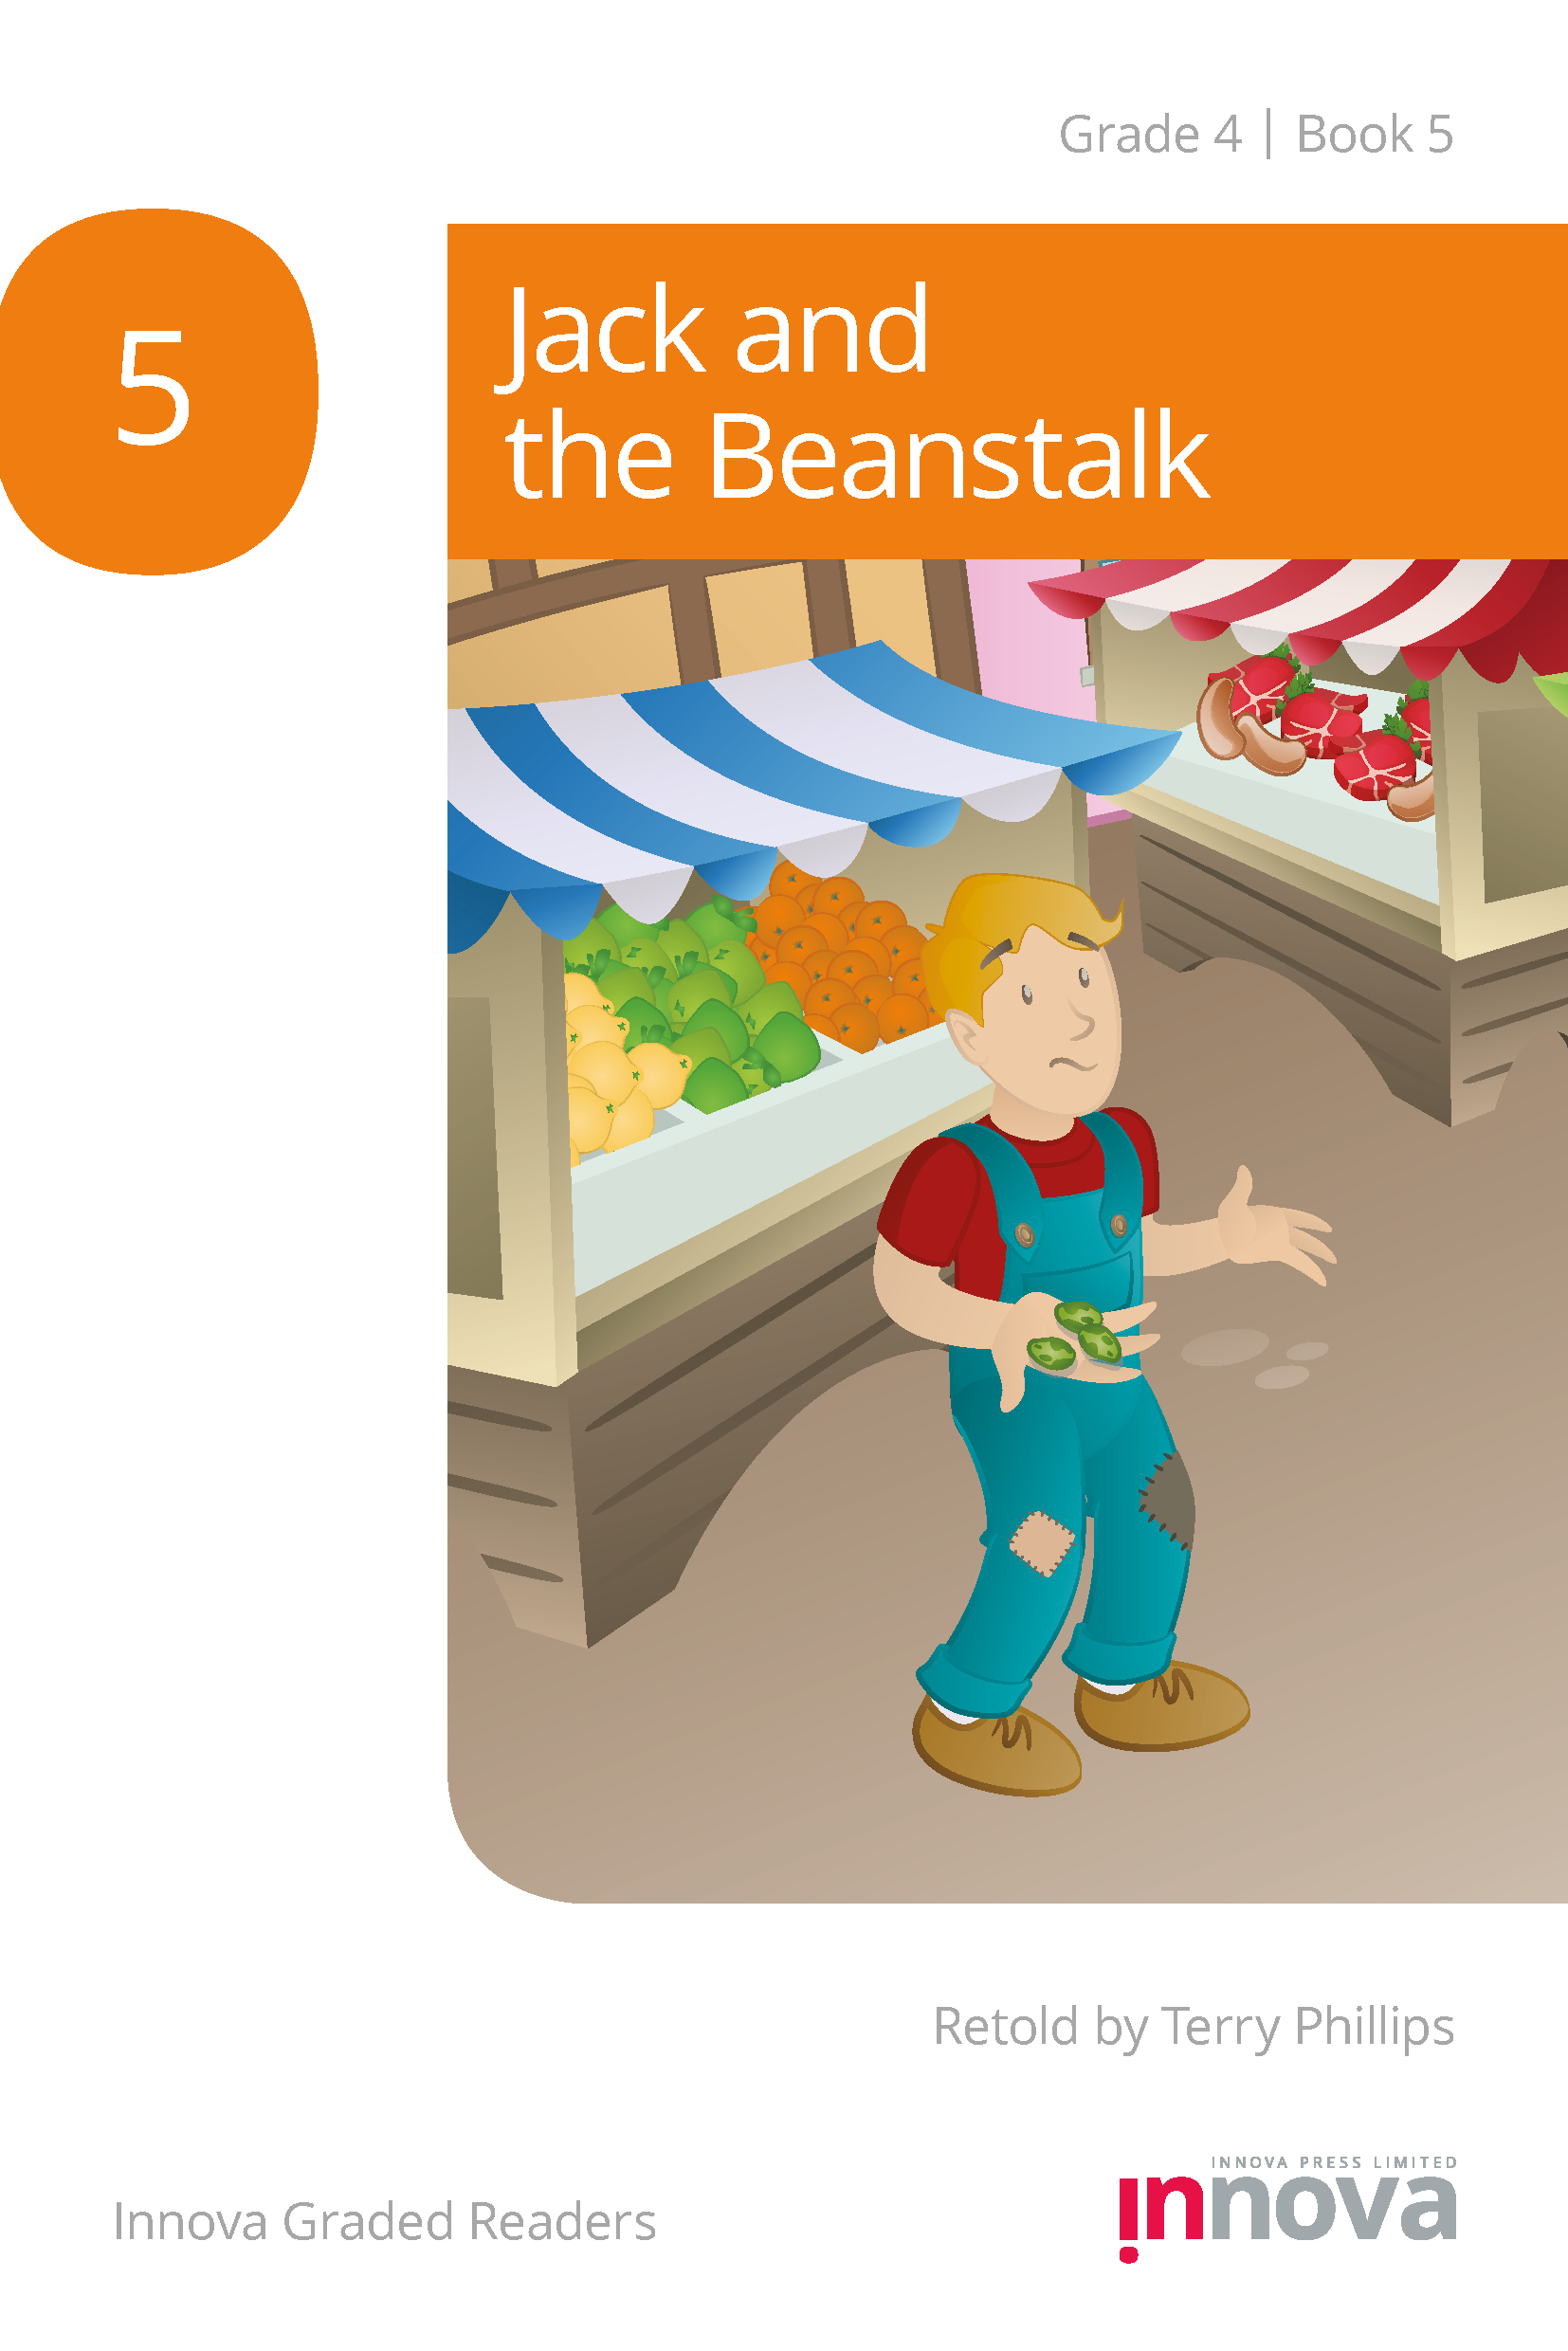 Innova Press Jack and the Beanstalk cover, a boy in dungarees stands in front of a food stall holding some beans